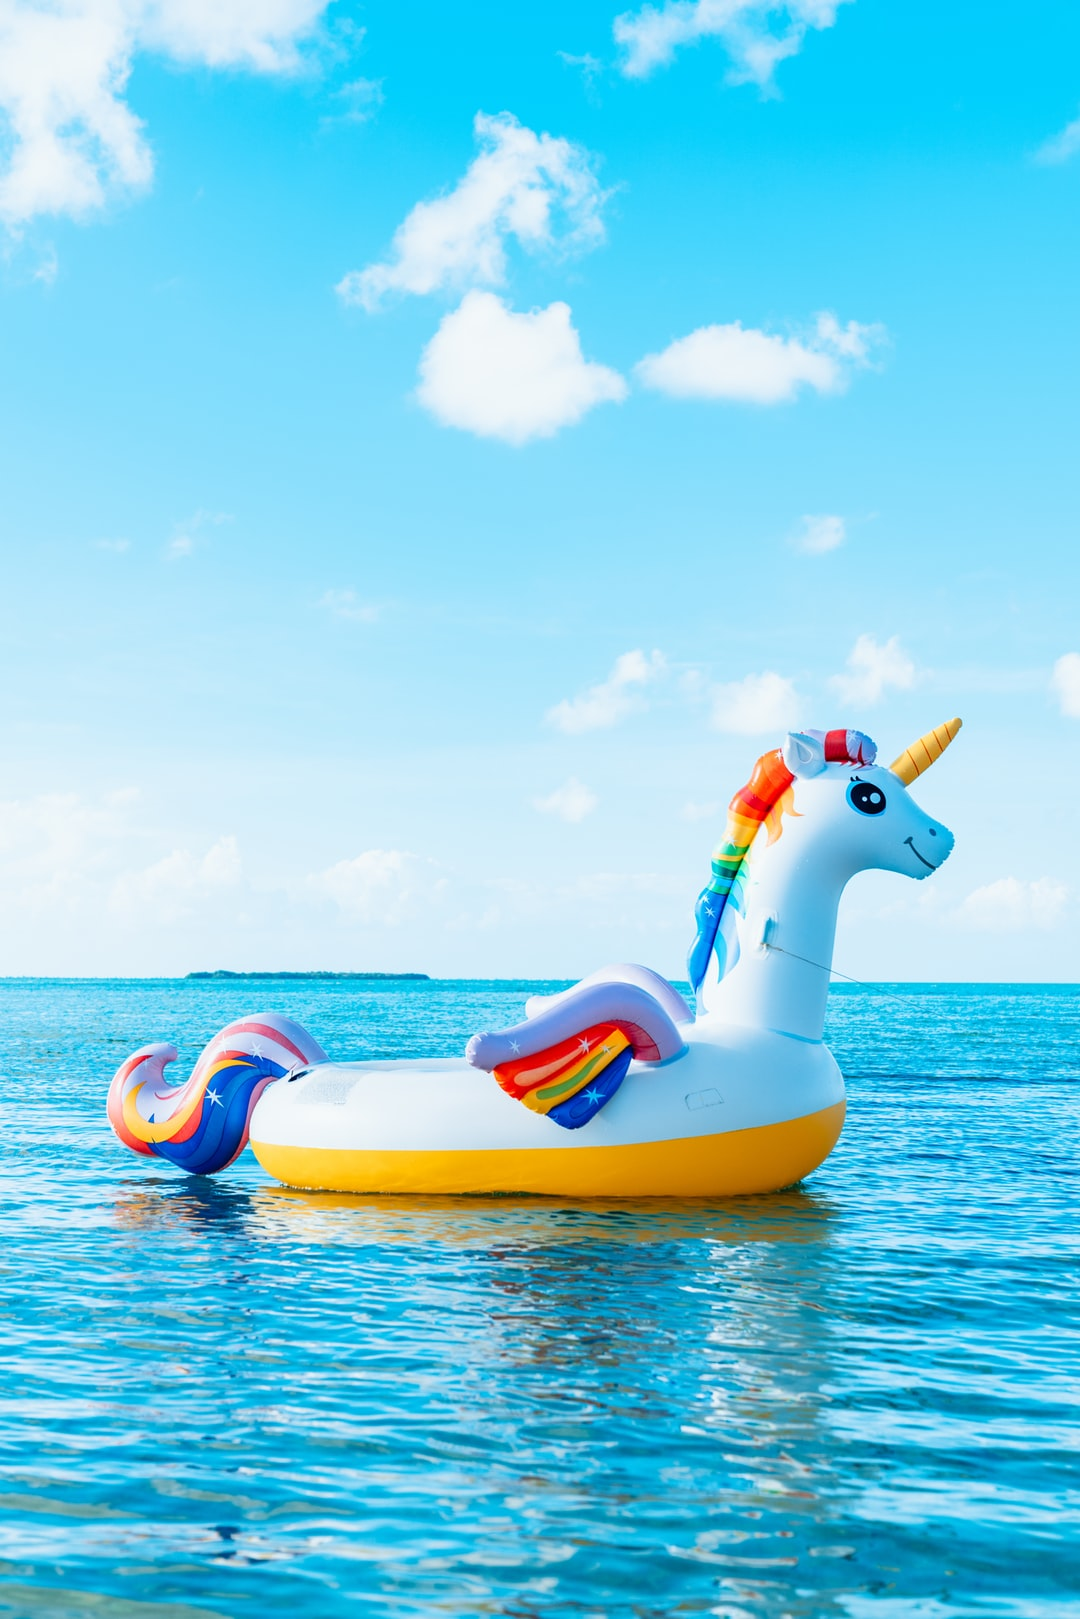 Water Fun Distancing with Inflatables and Water Toys